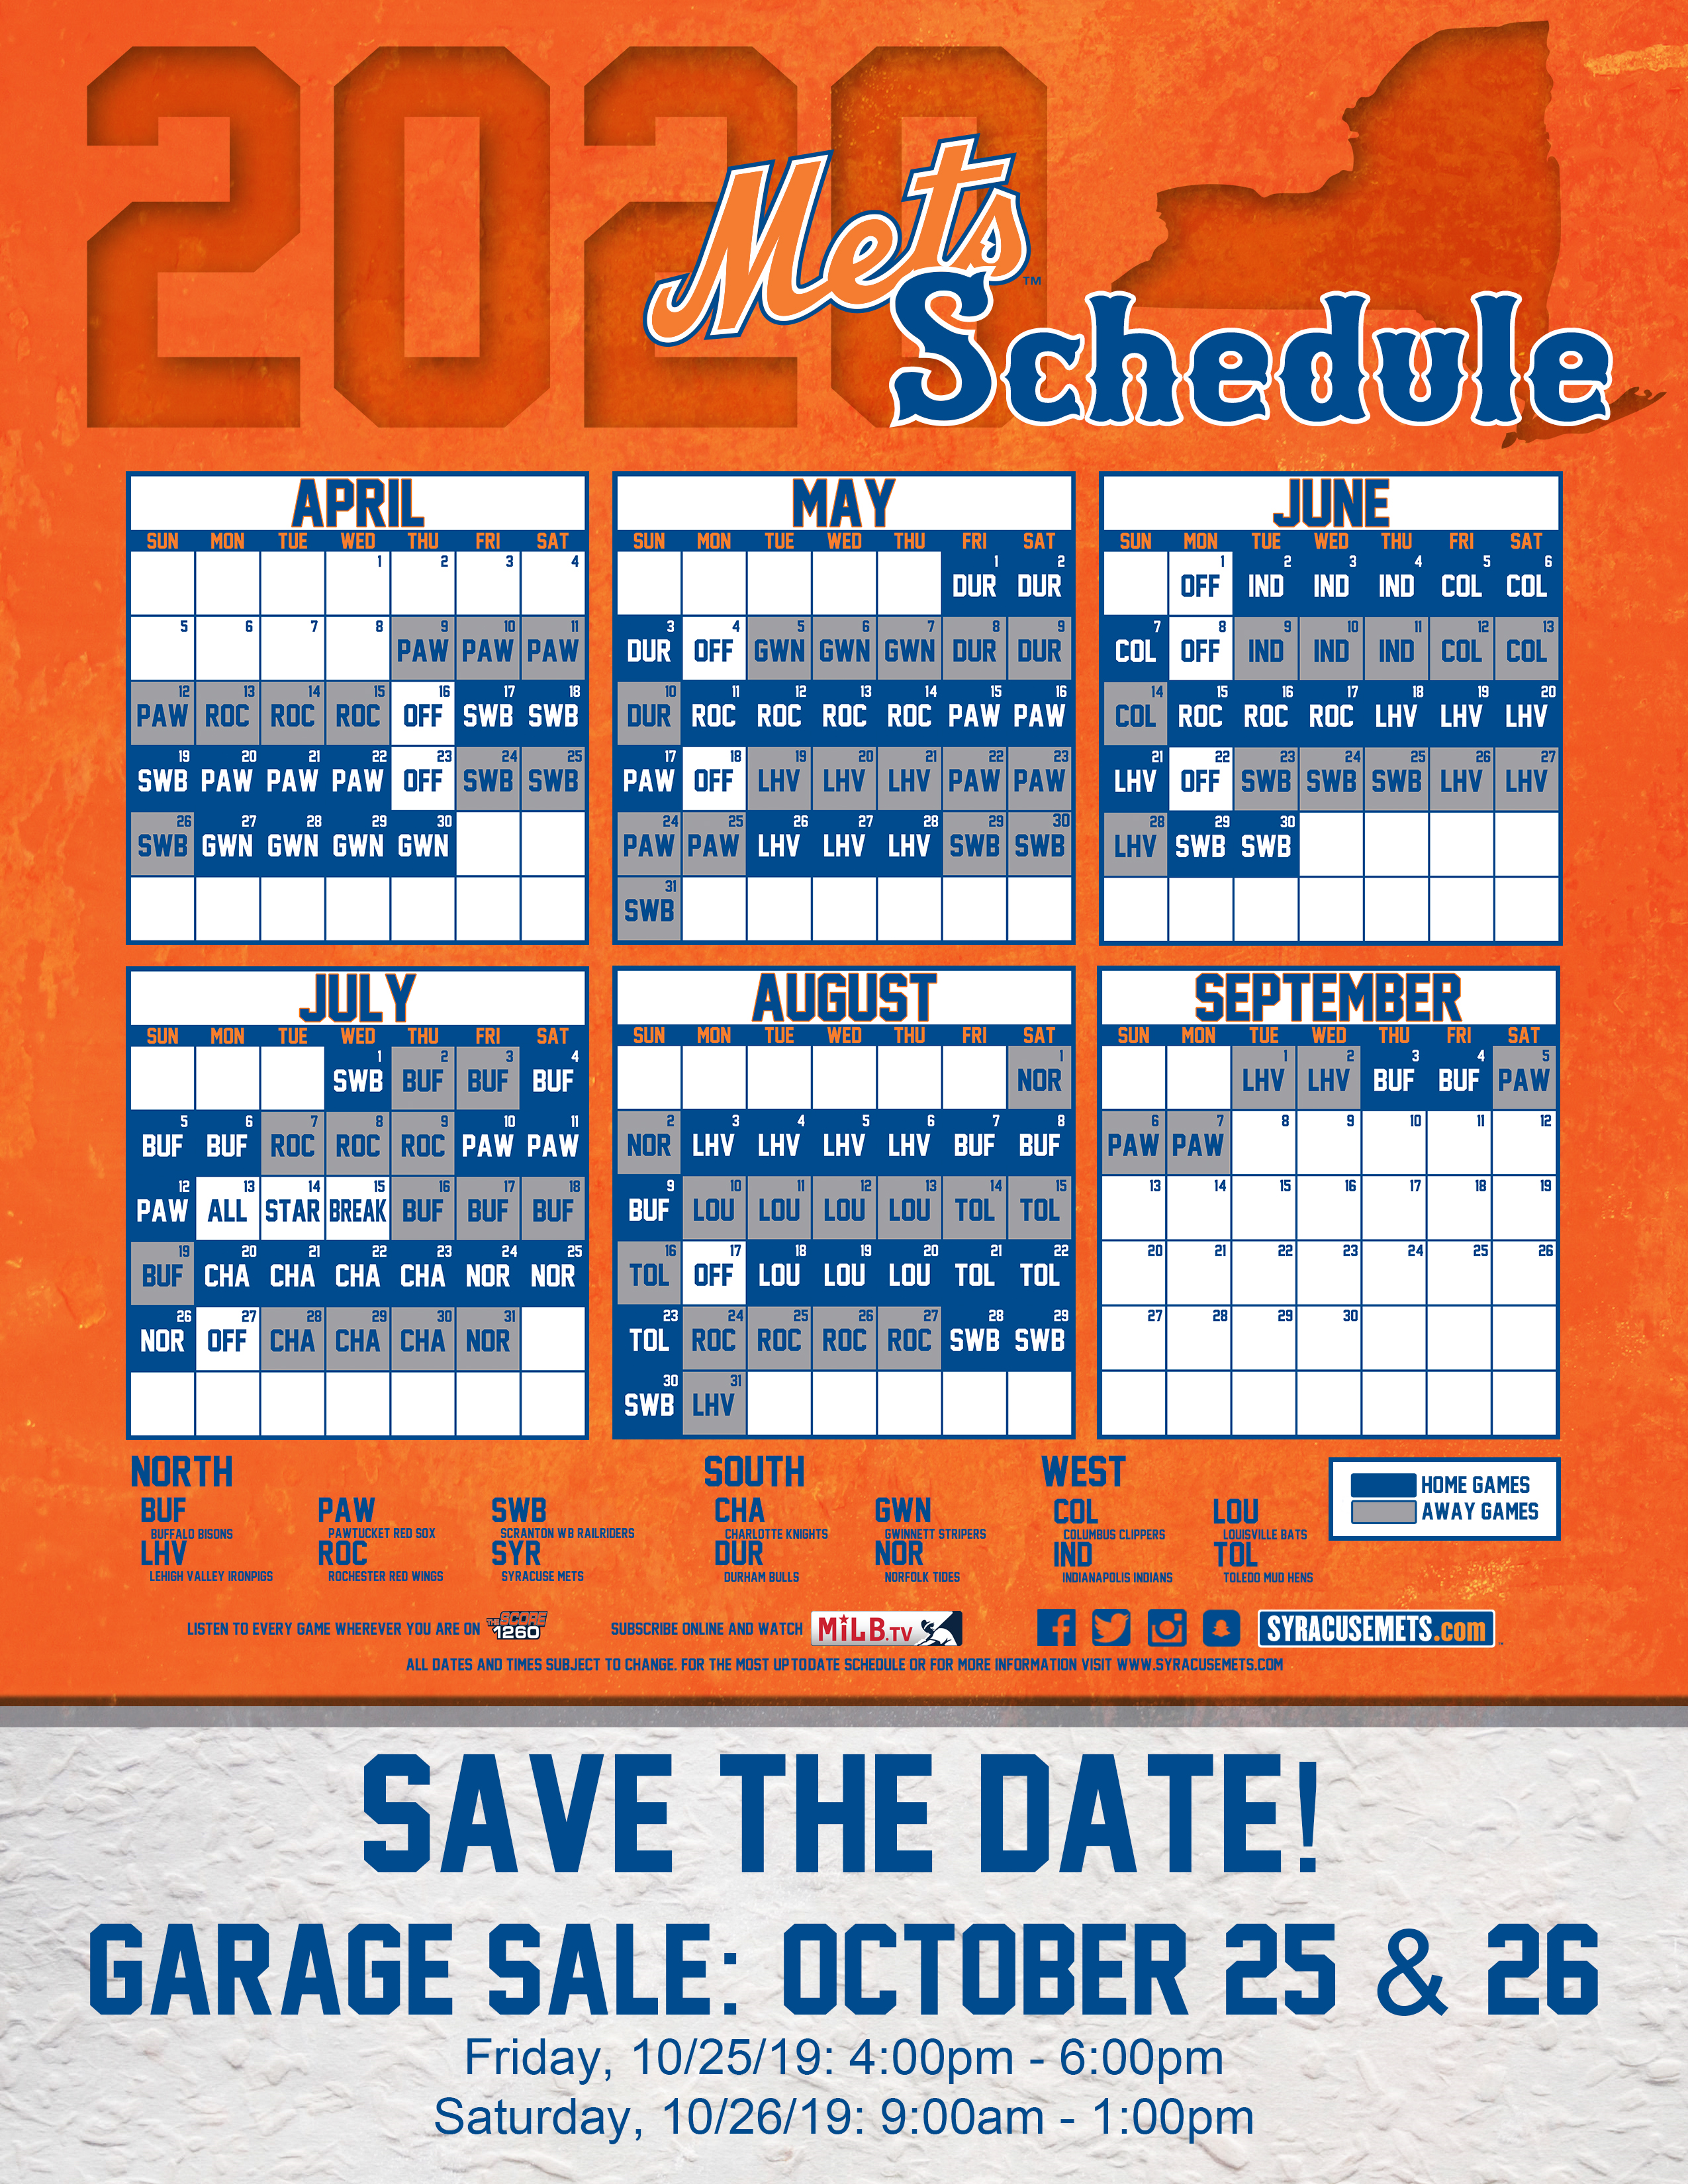 Best Pittsburgh Pirates Printable Schedule